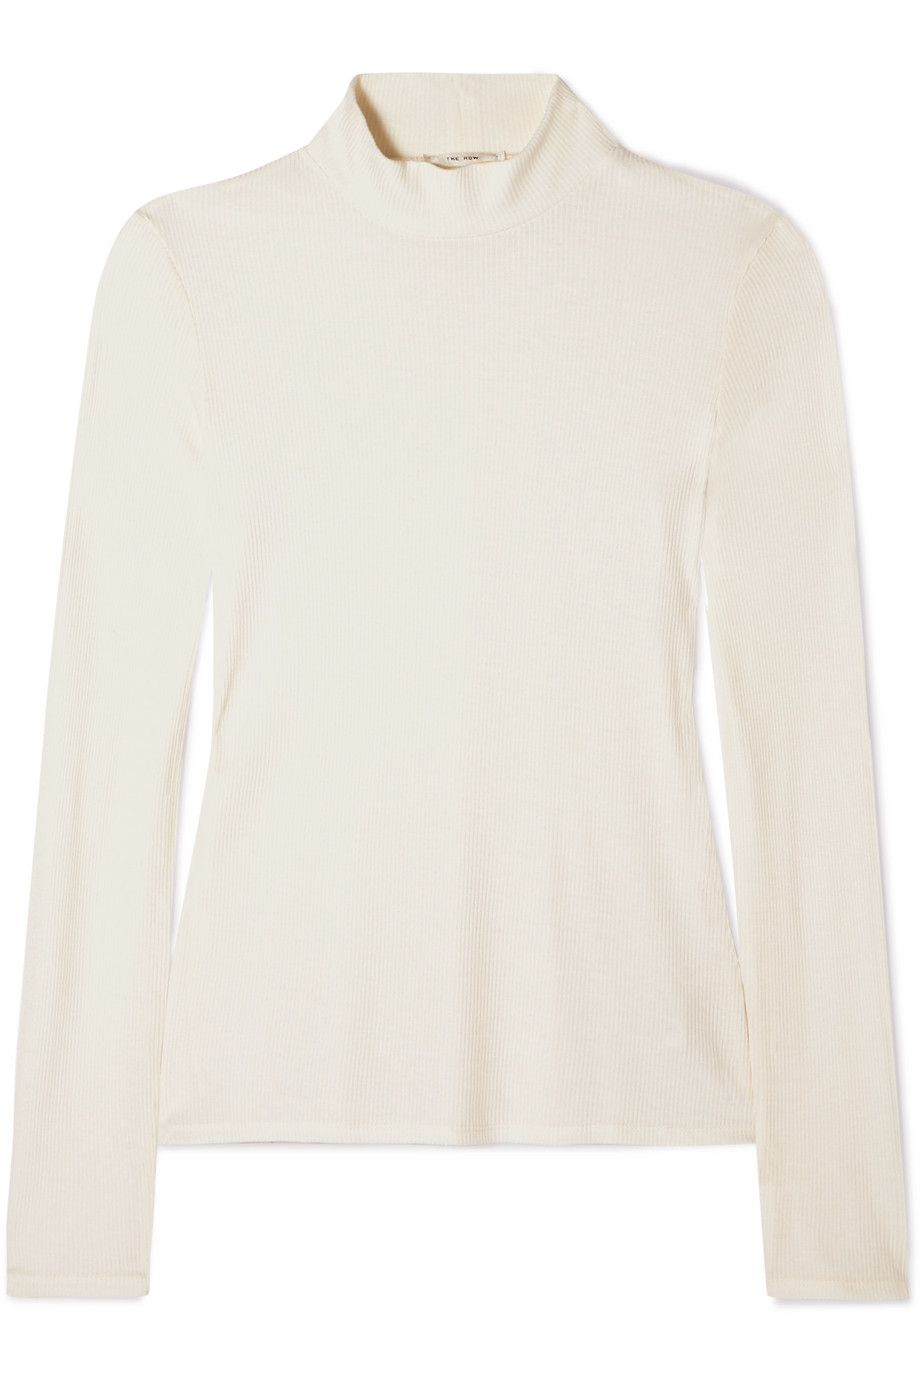 white mock-neck top